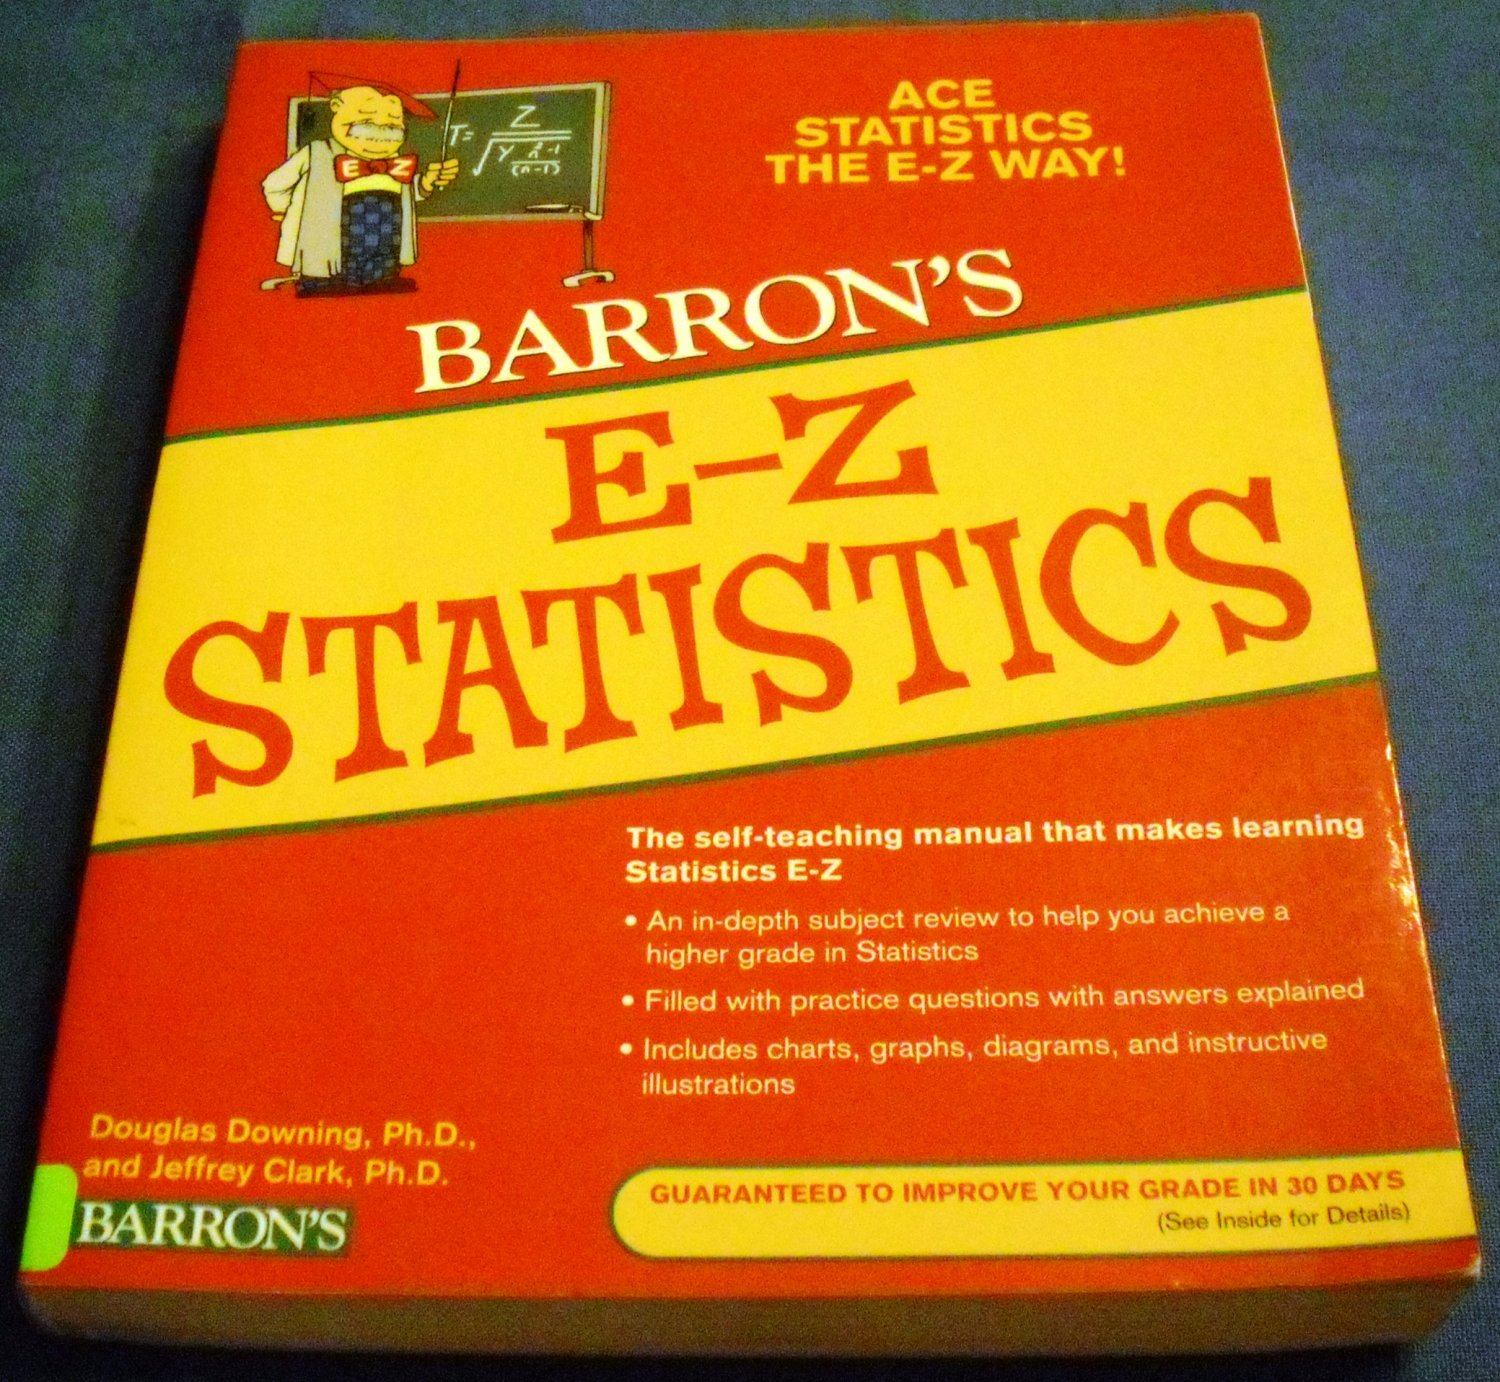 E-Z Statistics: Ace Statistics the E-Z Way by Douglas Downing and Jeffrey Clark (Apr 1, 2009)